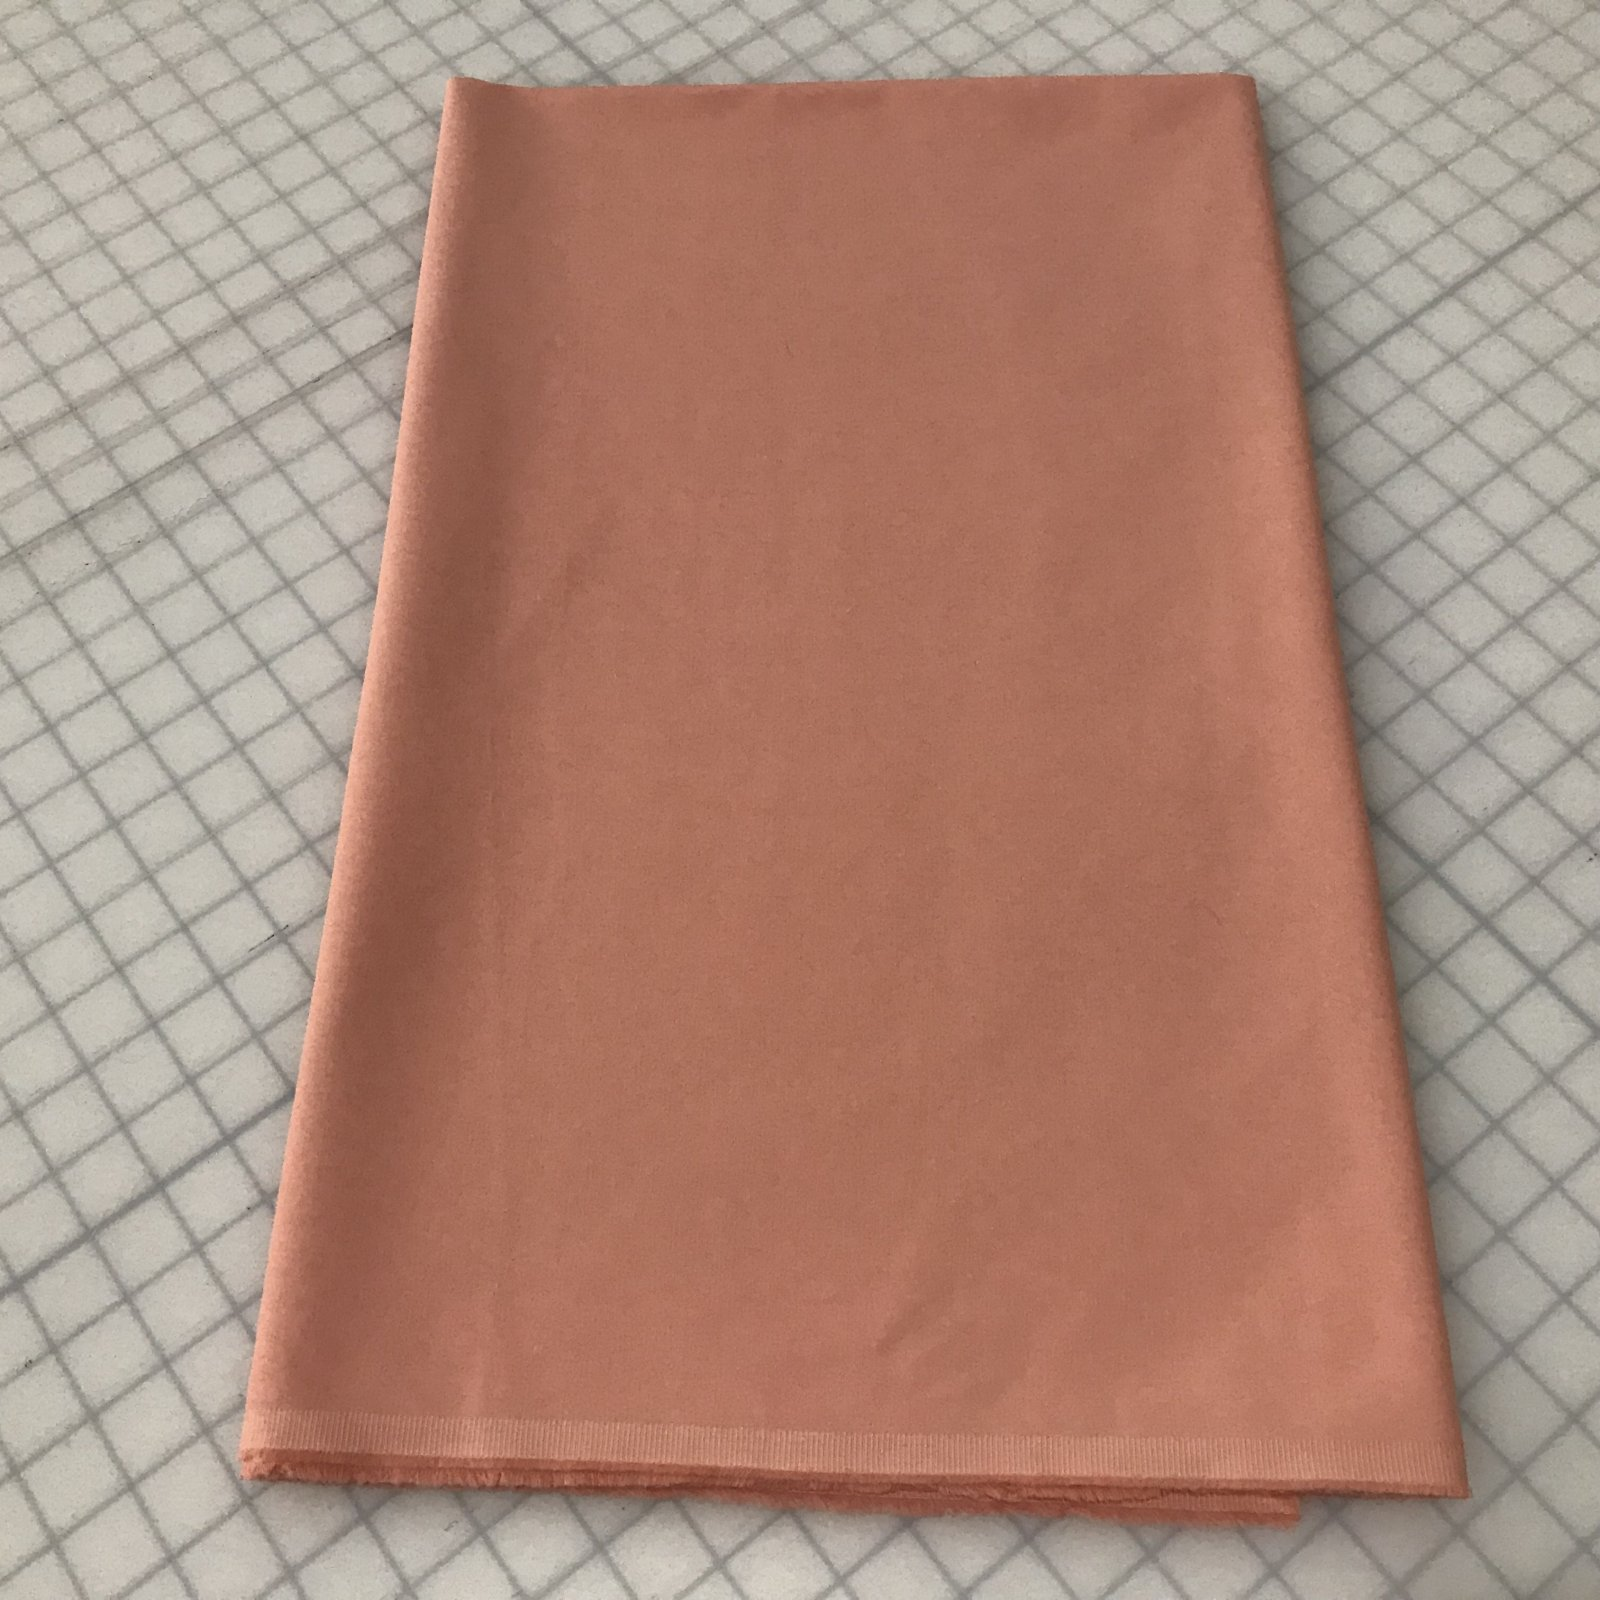 Stretch Poplin - Peach - 1 1/2 yards